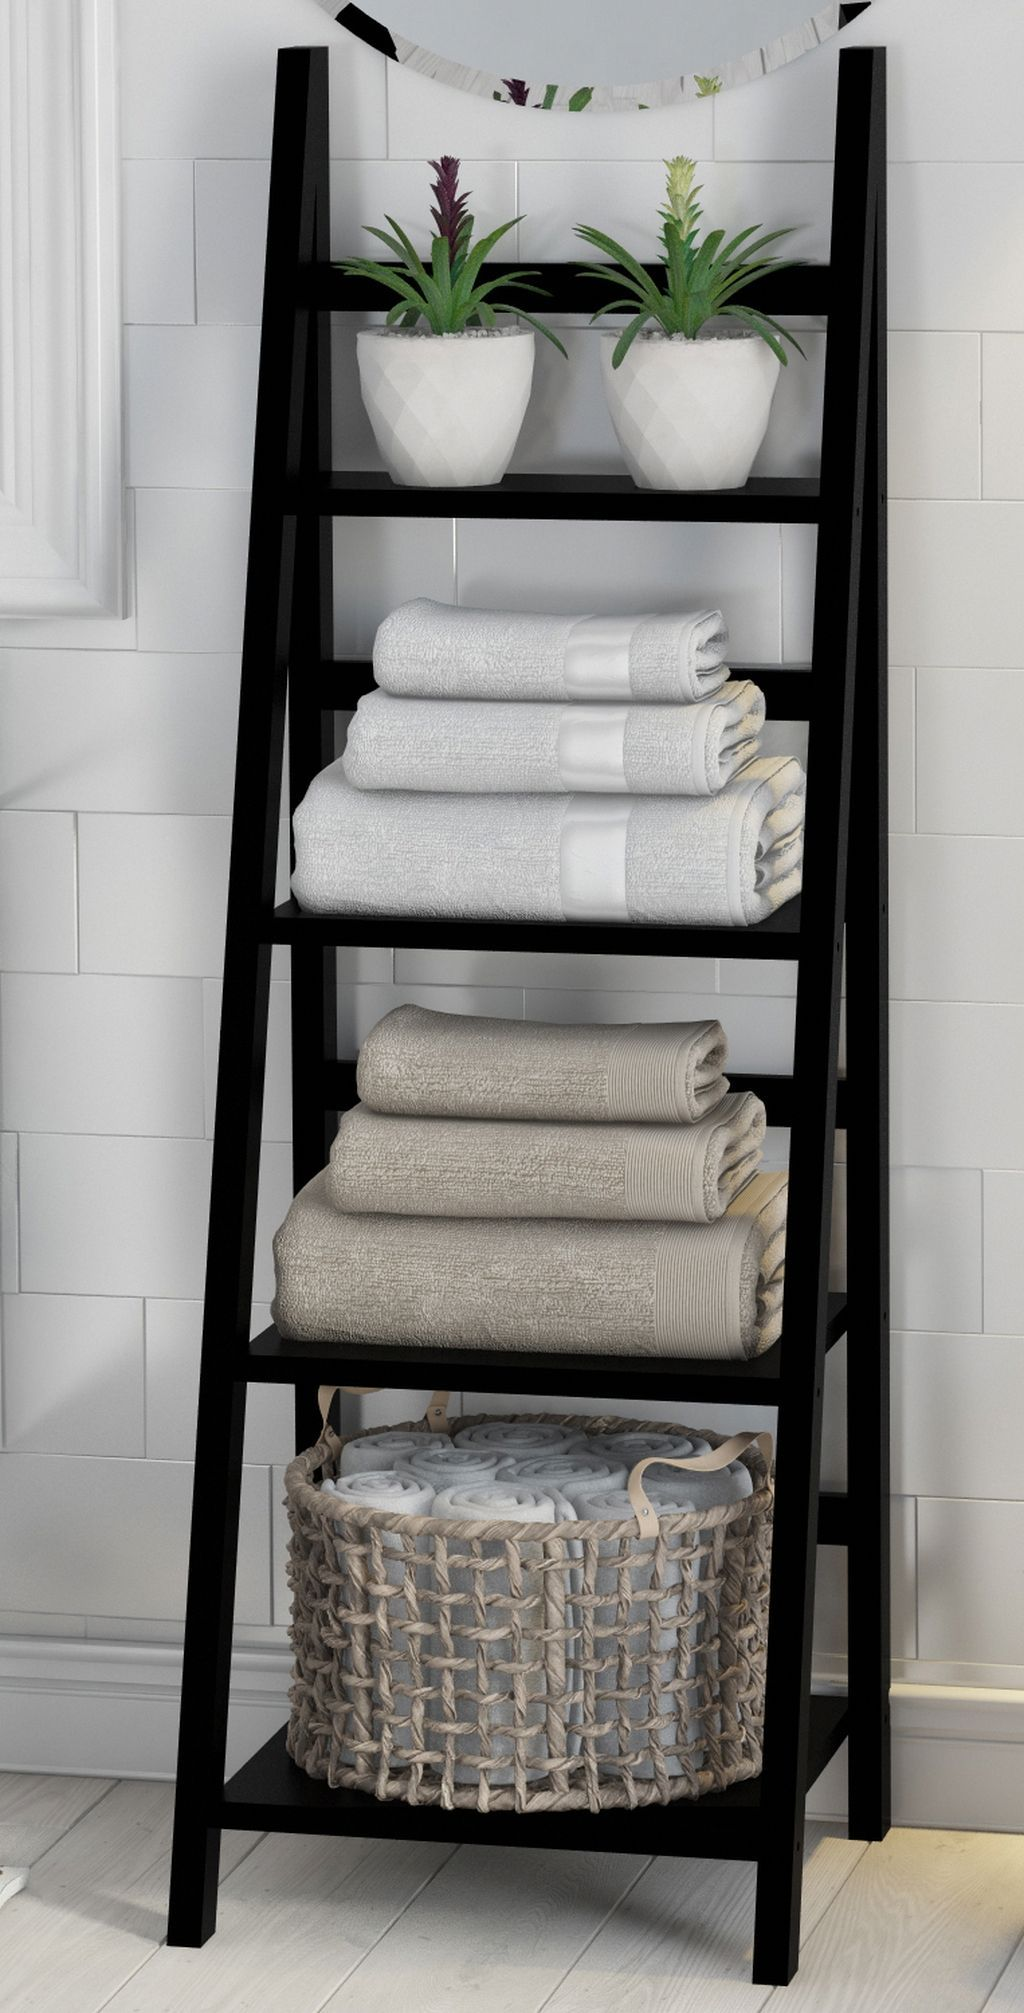 Photo of How to Make Hanging Bathroom Storage for Small Spaces #smallbathroomstorage